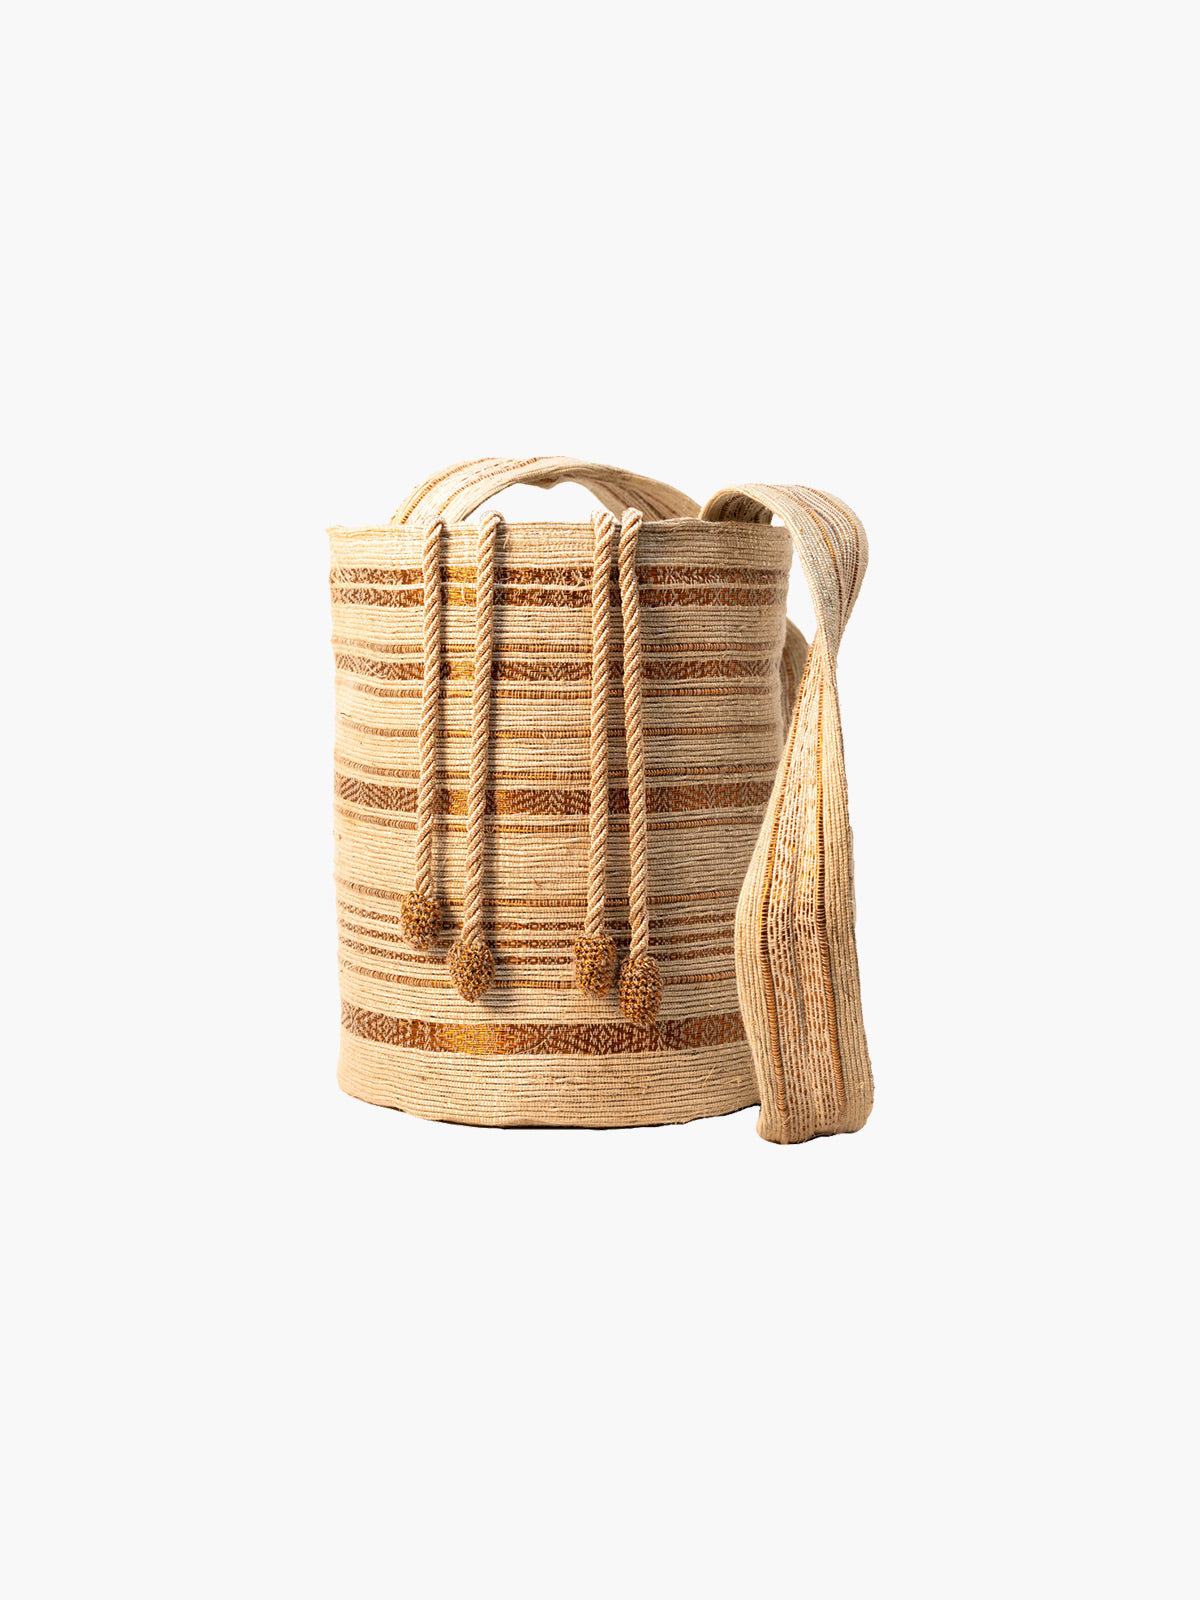 Bucket Bag | Natural & Copper Bucket Bag | Natural & Copper